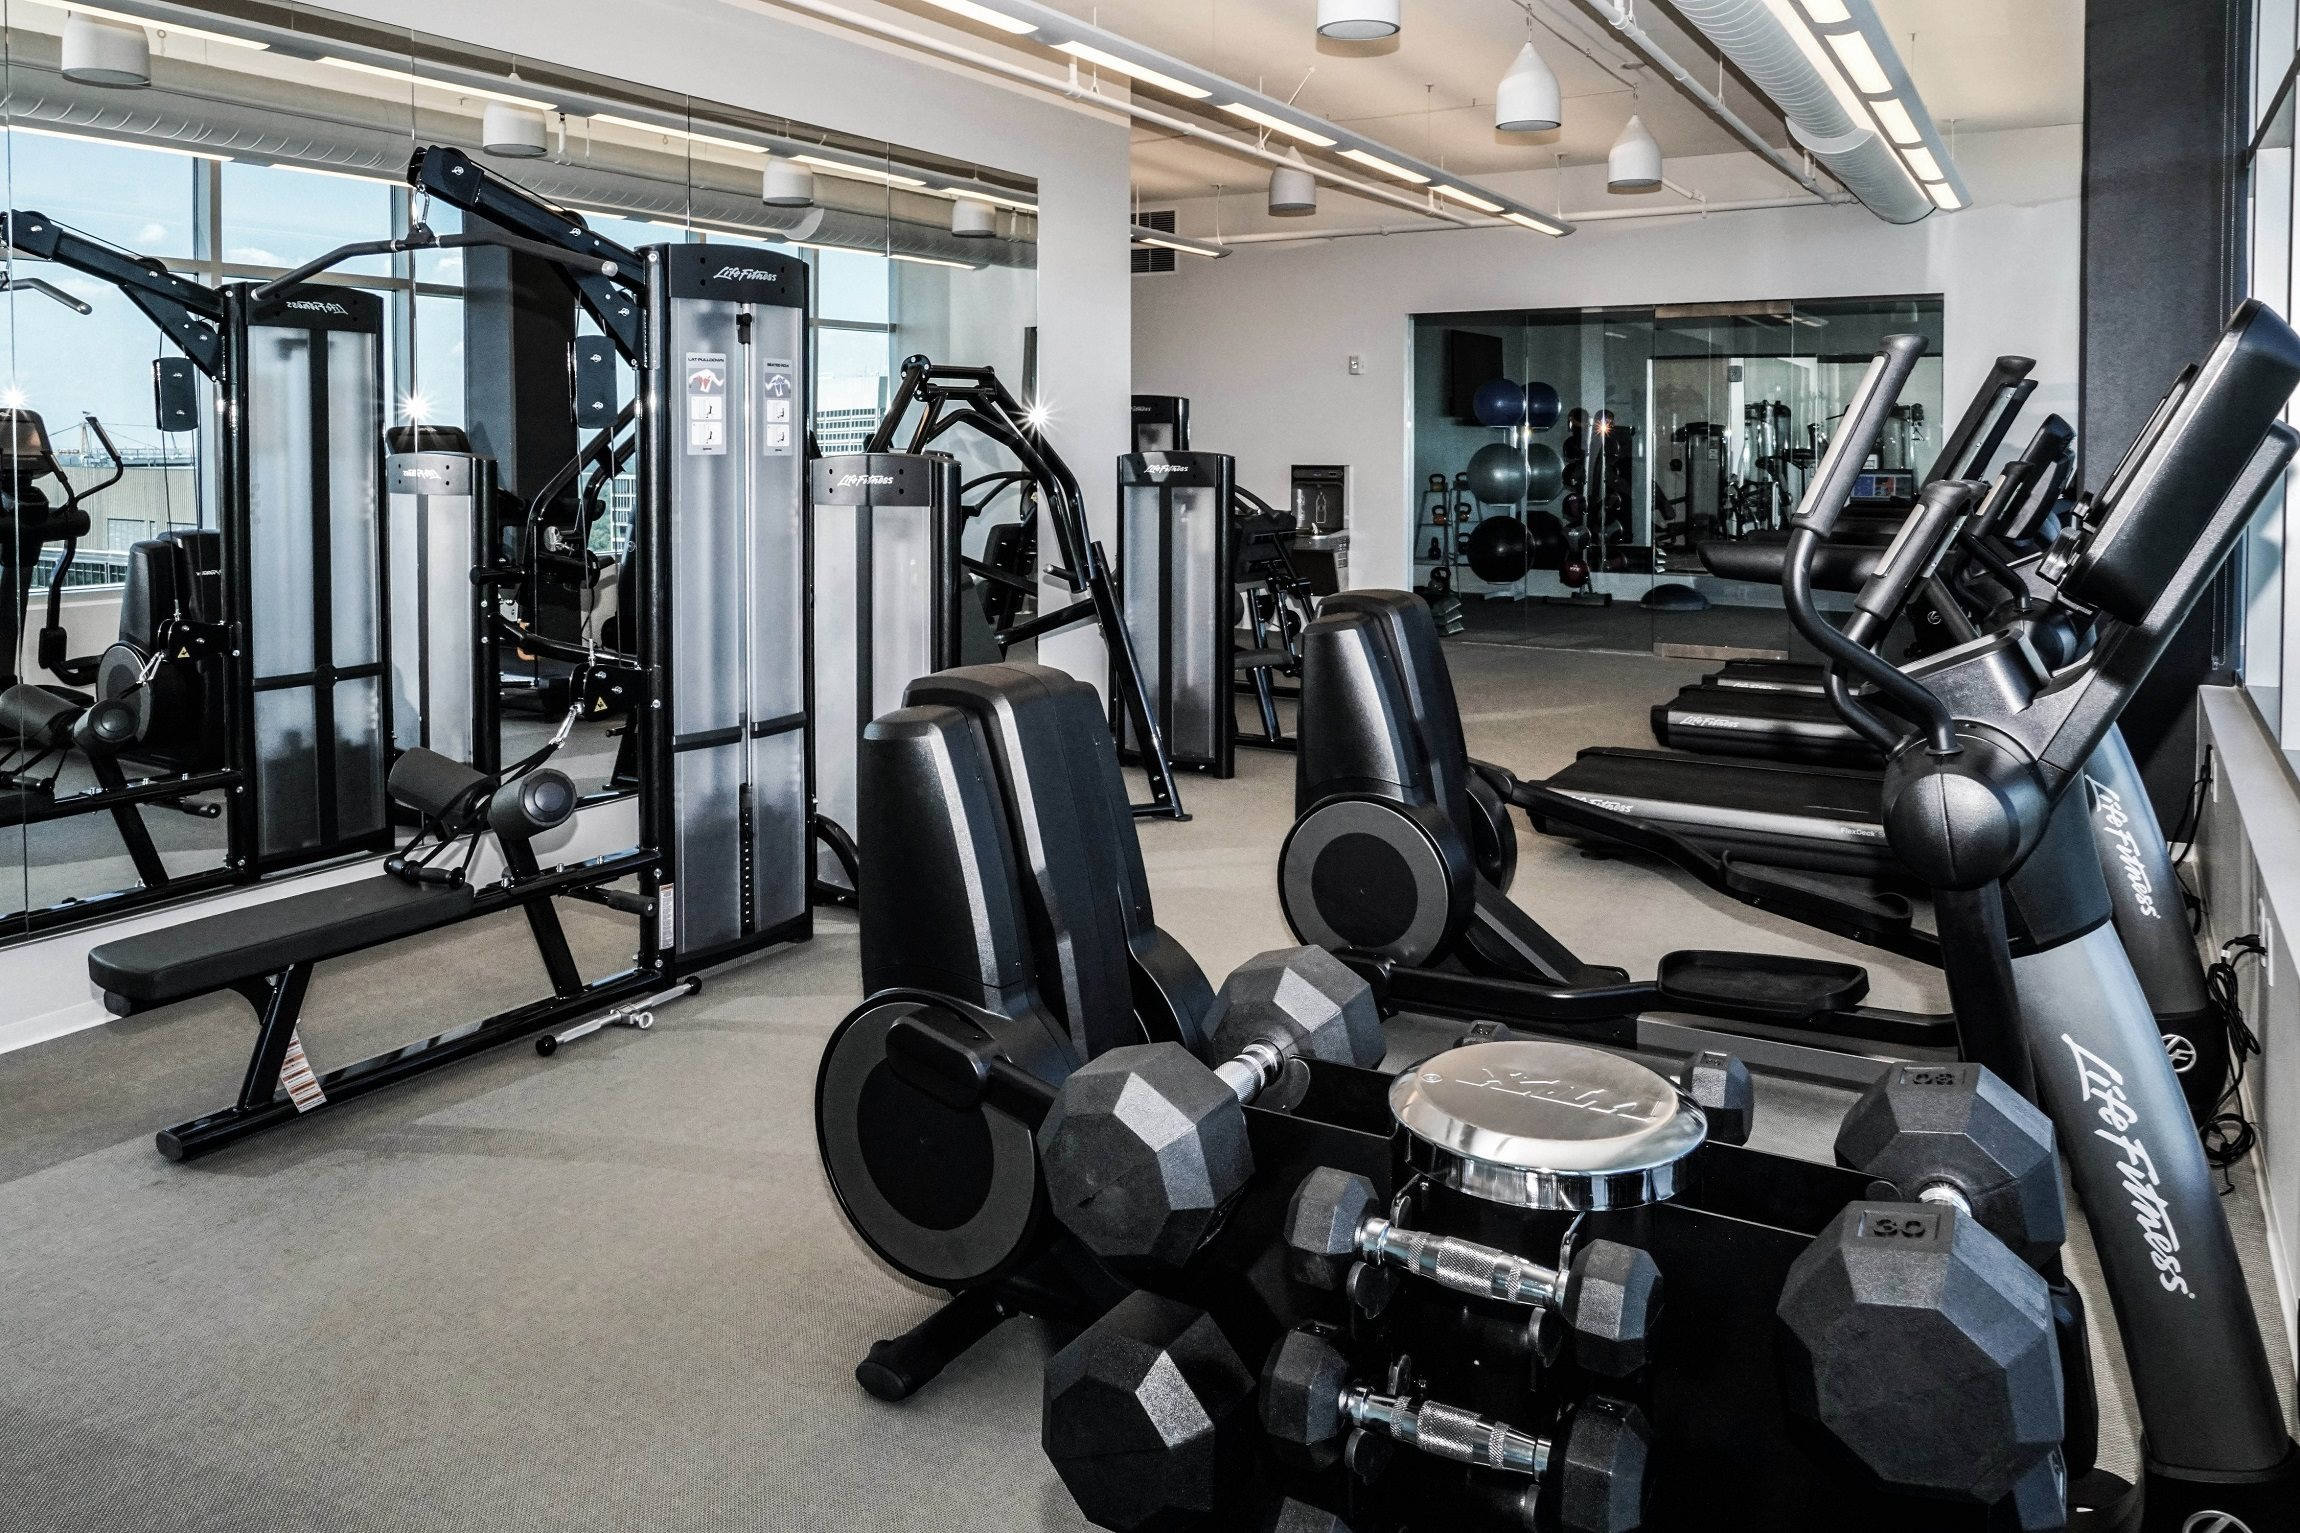 State-of-the-Art Fitness Center, Available 24/7